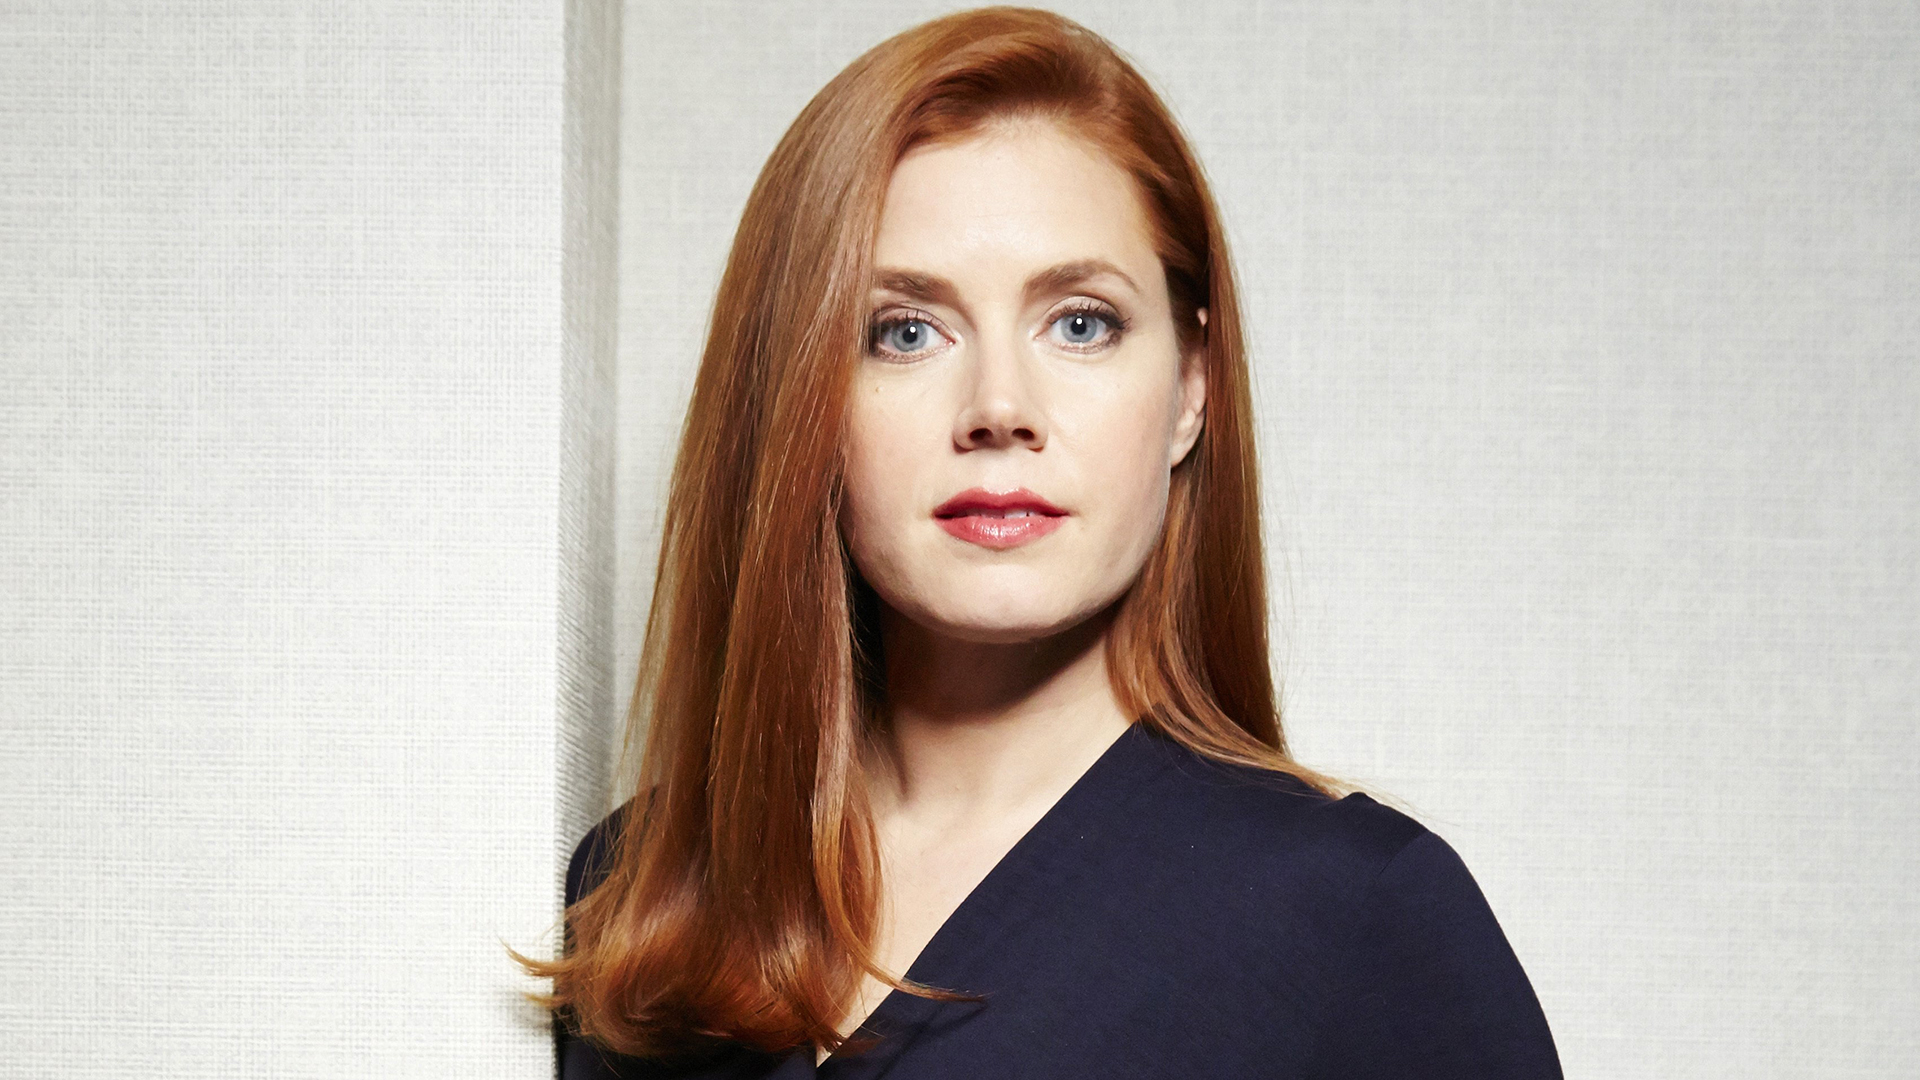 Amy Adams Red Hair Helped Her Career Actress Says